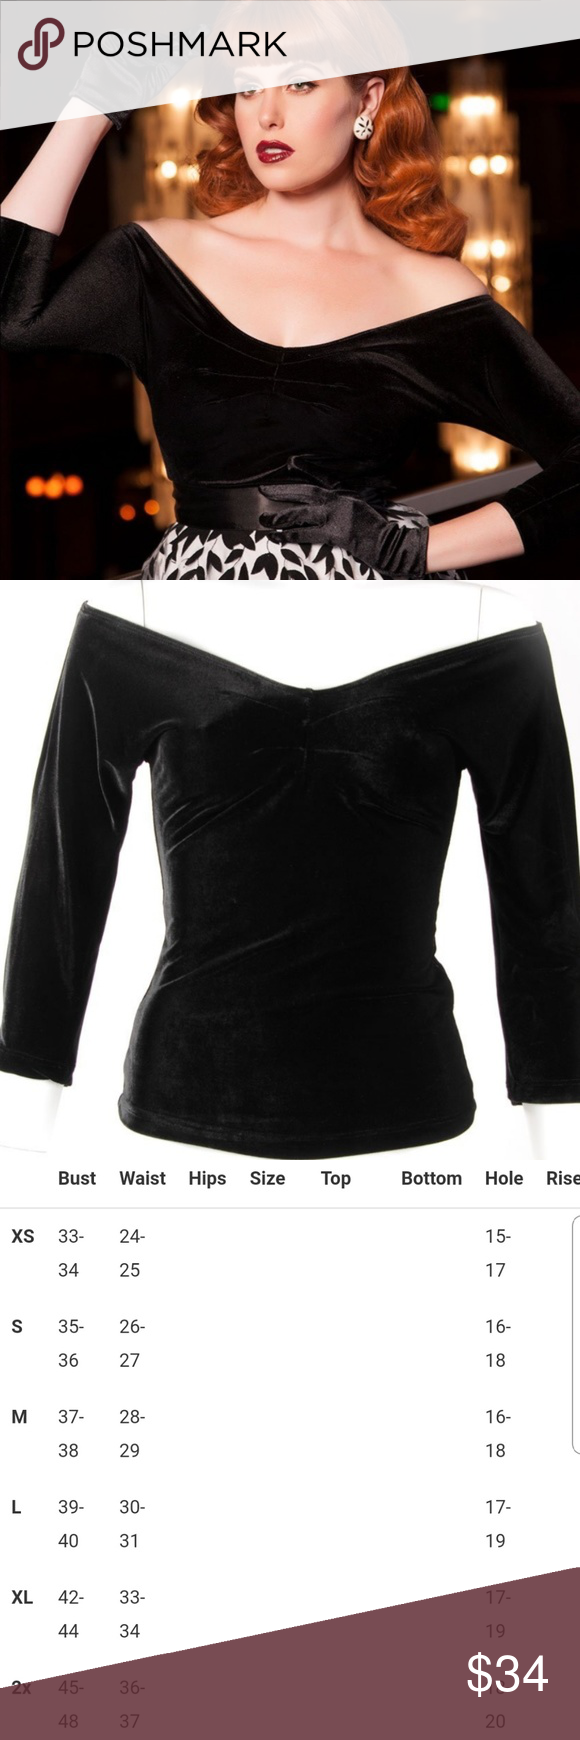 eec1742e9d5f1b Pinup Couture Lolita Top in Black Velvet Sirens